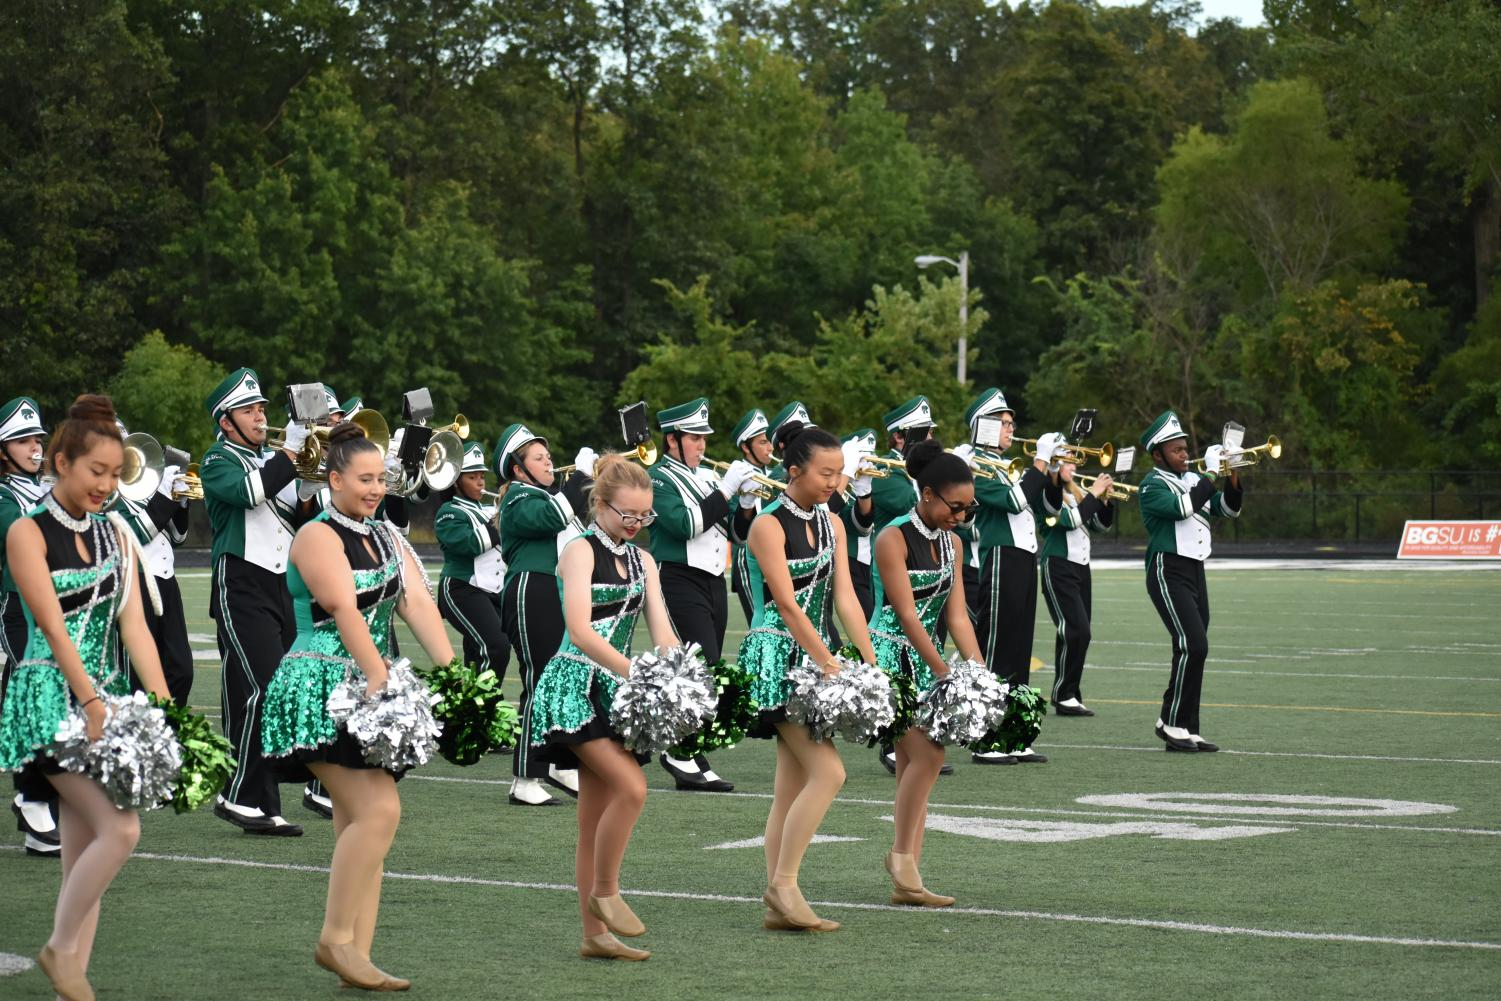 Under the leadership of Daisha Levy, the auxiliary team performs in the home opener in August.